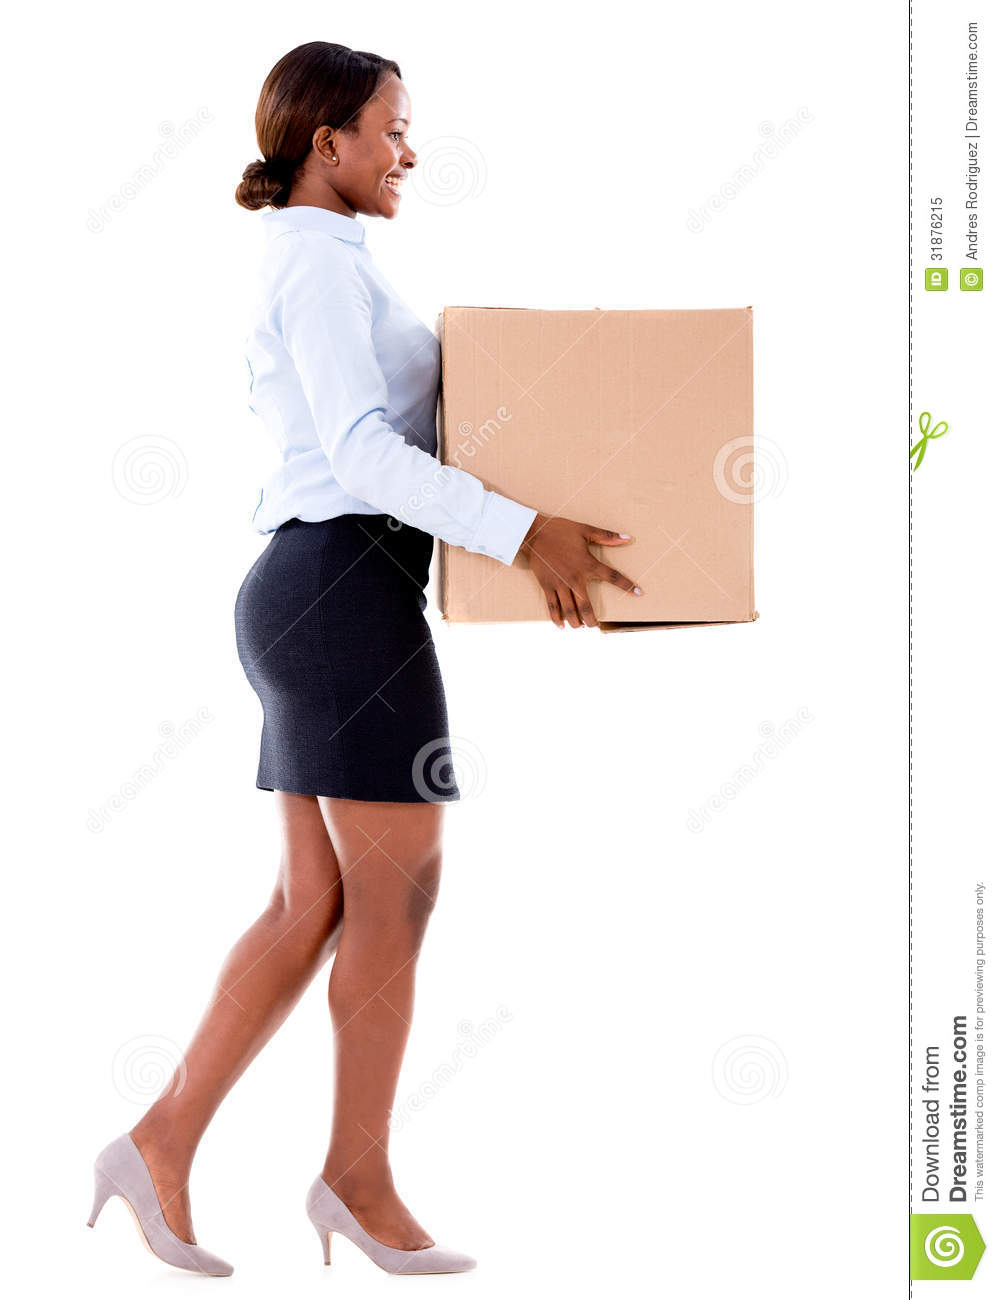 Como Utilizar A Sauna Pra Perder calorias business-woman-carrying-box-cardboard-isolated-over-white-31876215